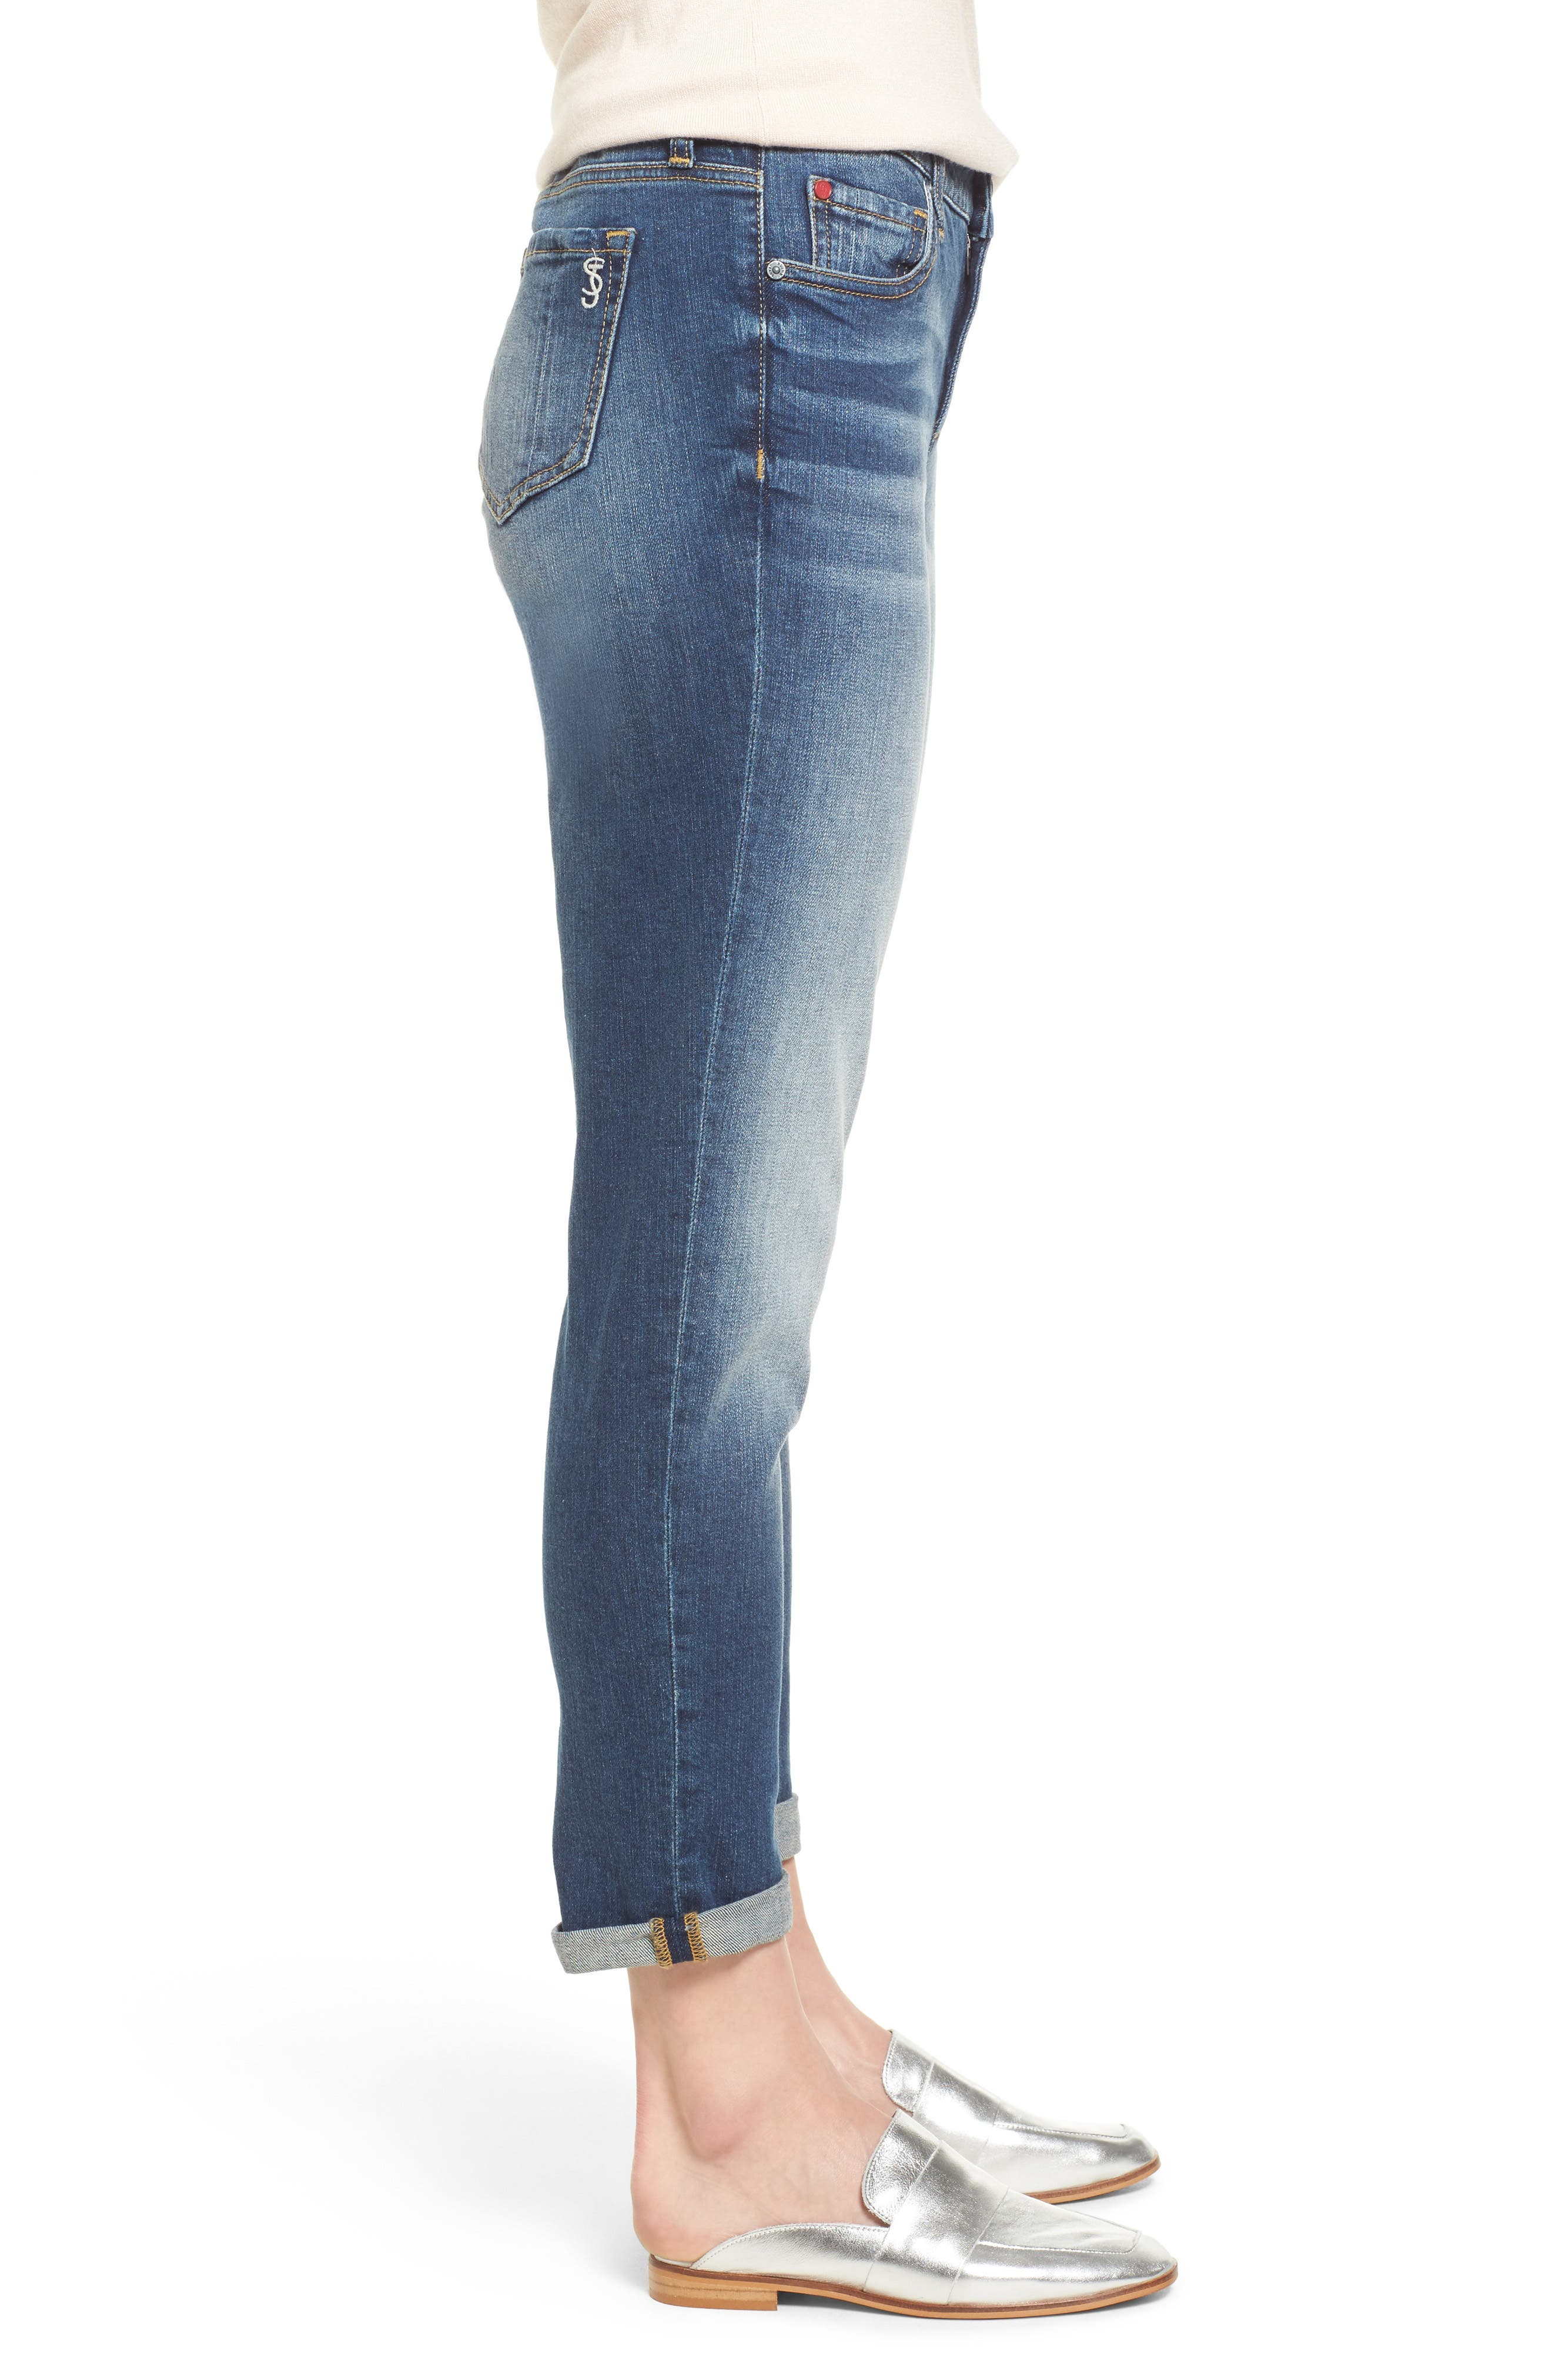 SLINK JEANS,                             Rolled Boyfriend Jeans,                             Alternate thumbnail 3, color,                             VAL